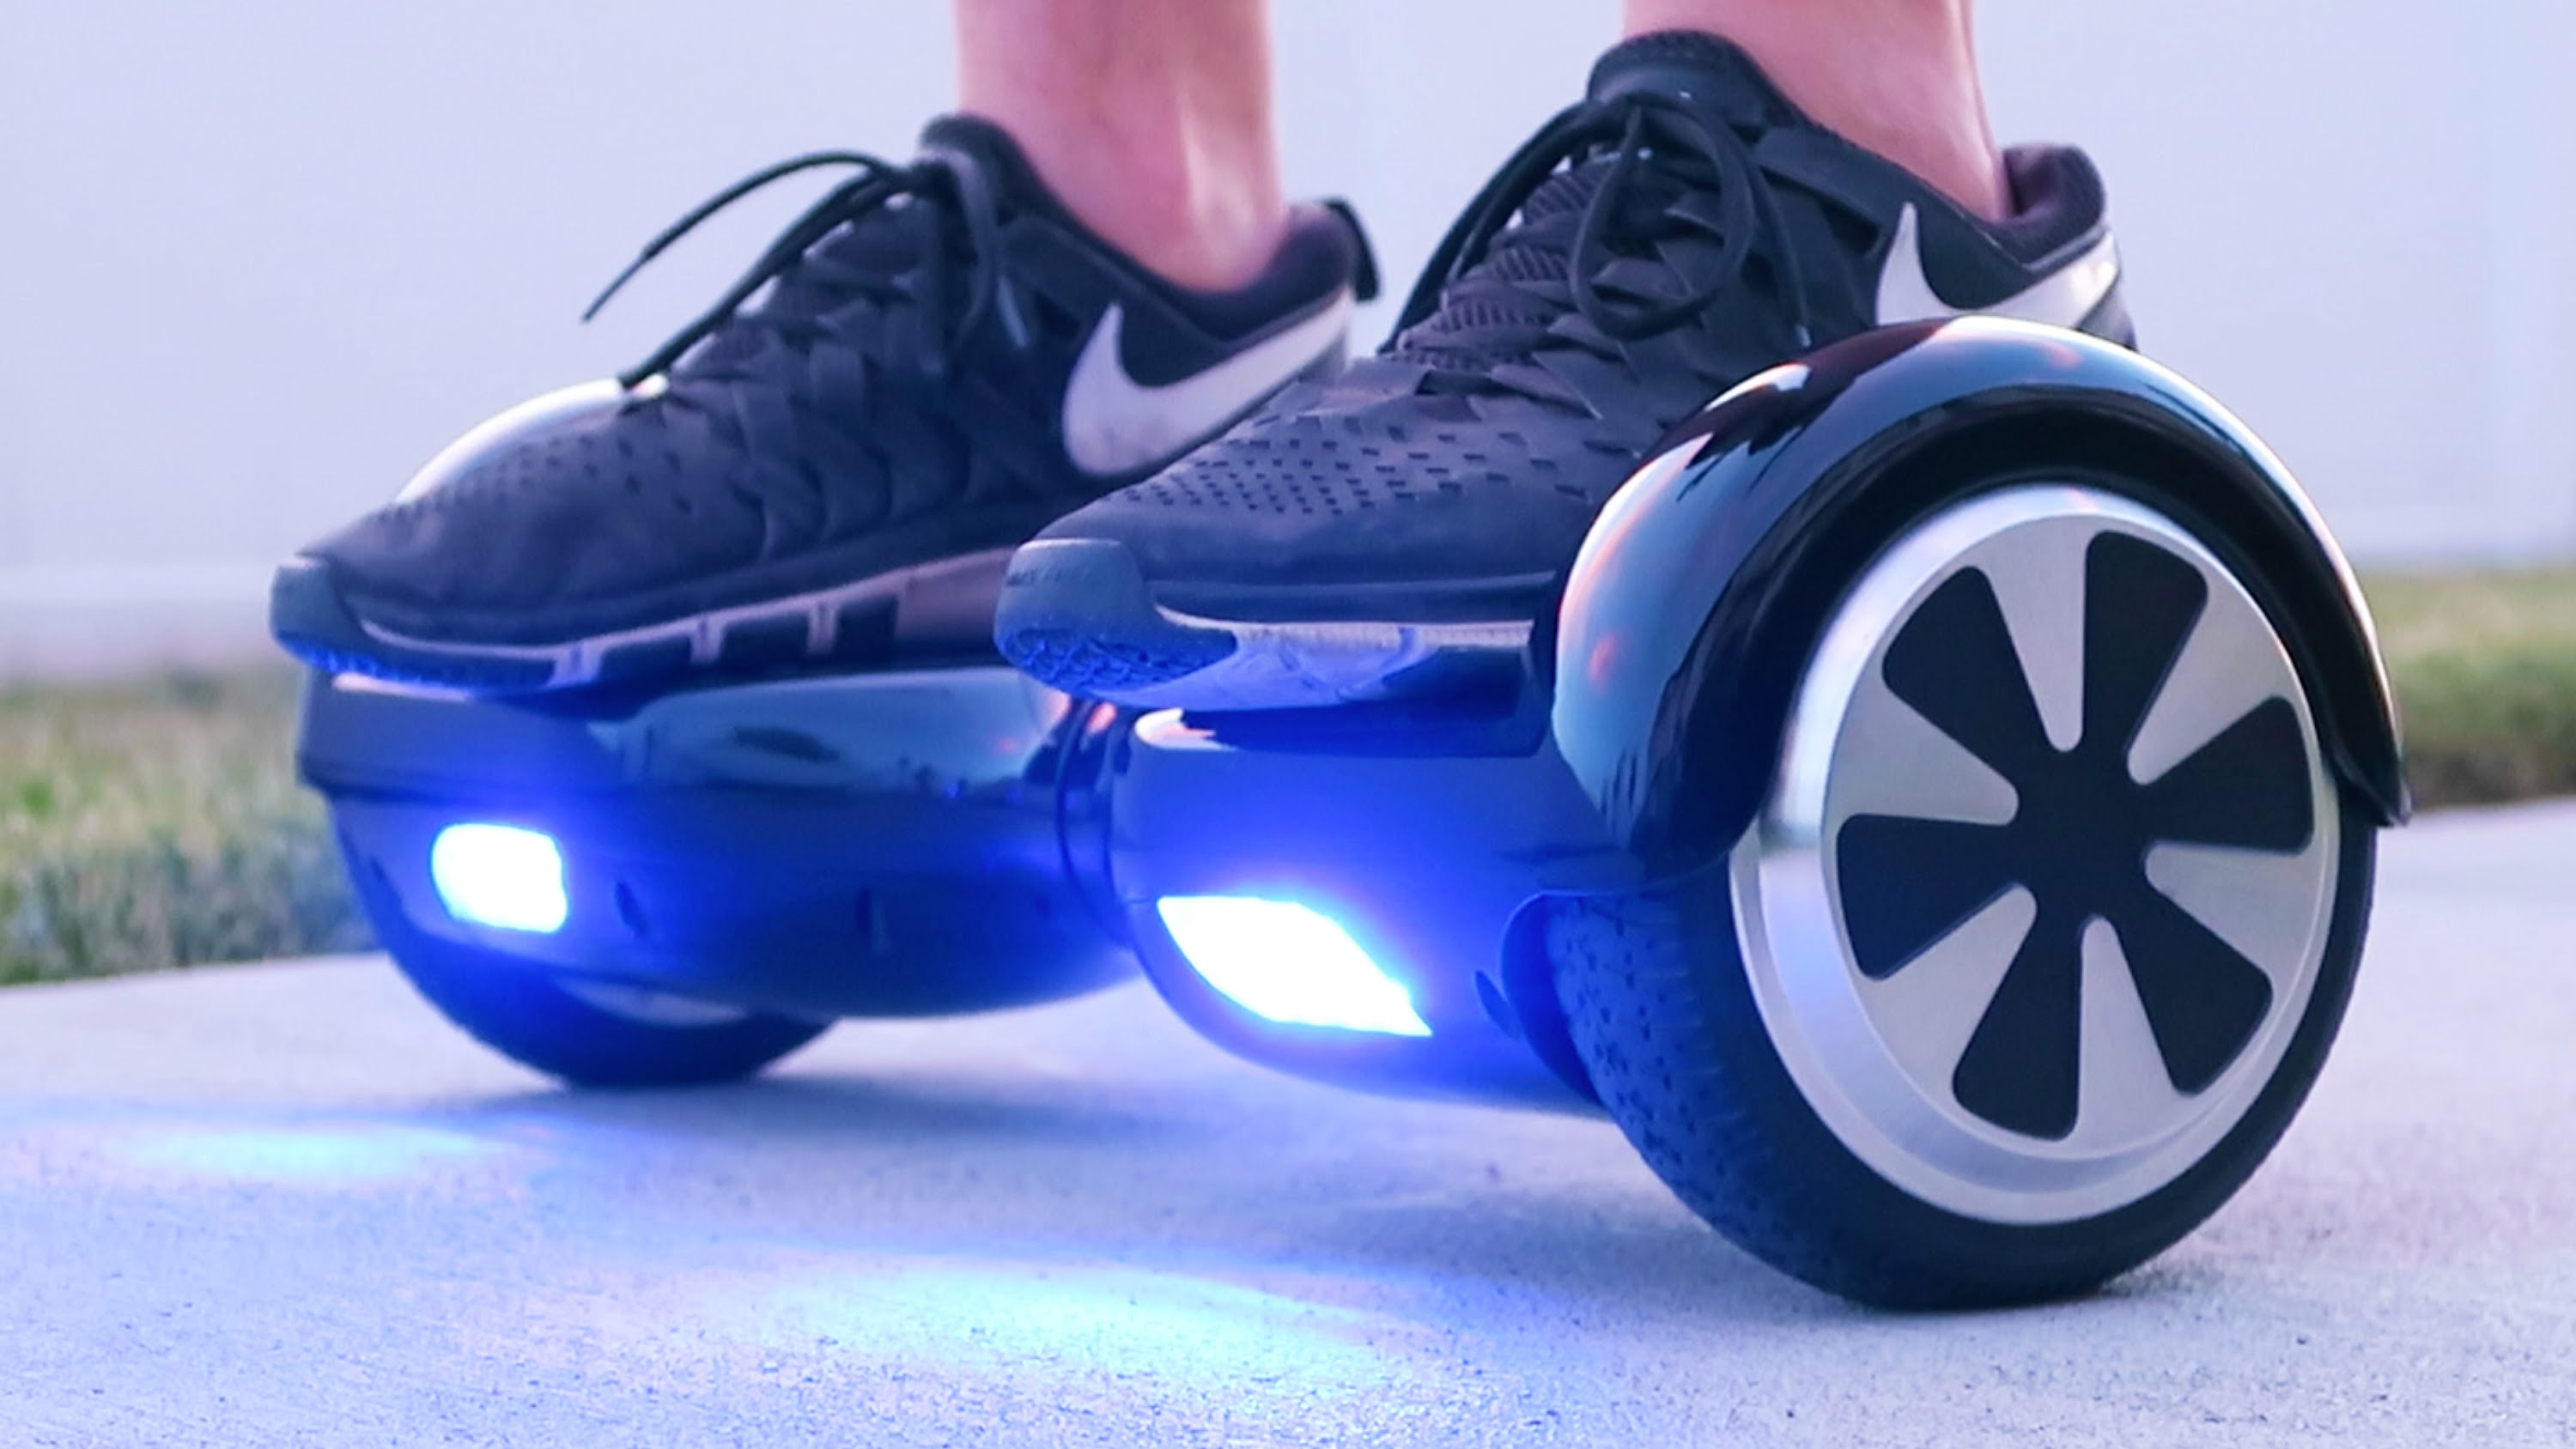 device masquerading as a hoverboard